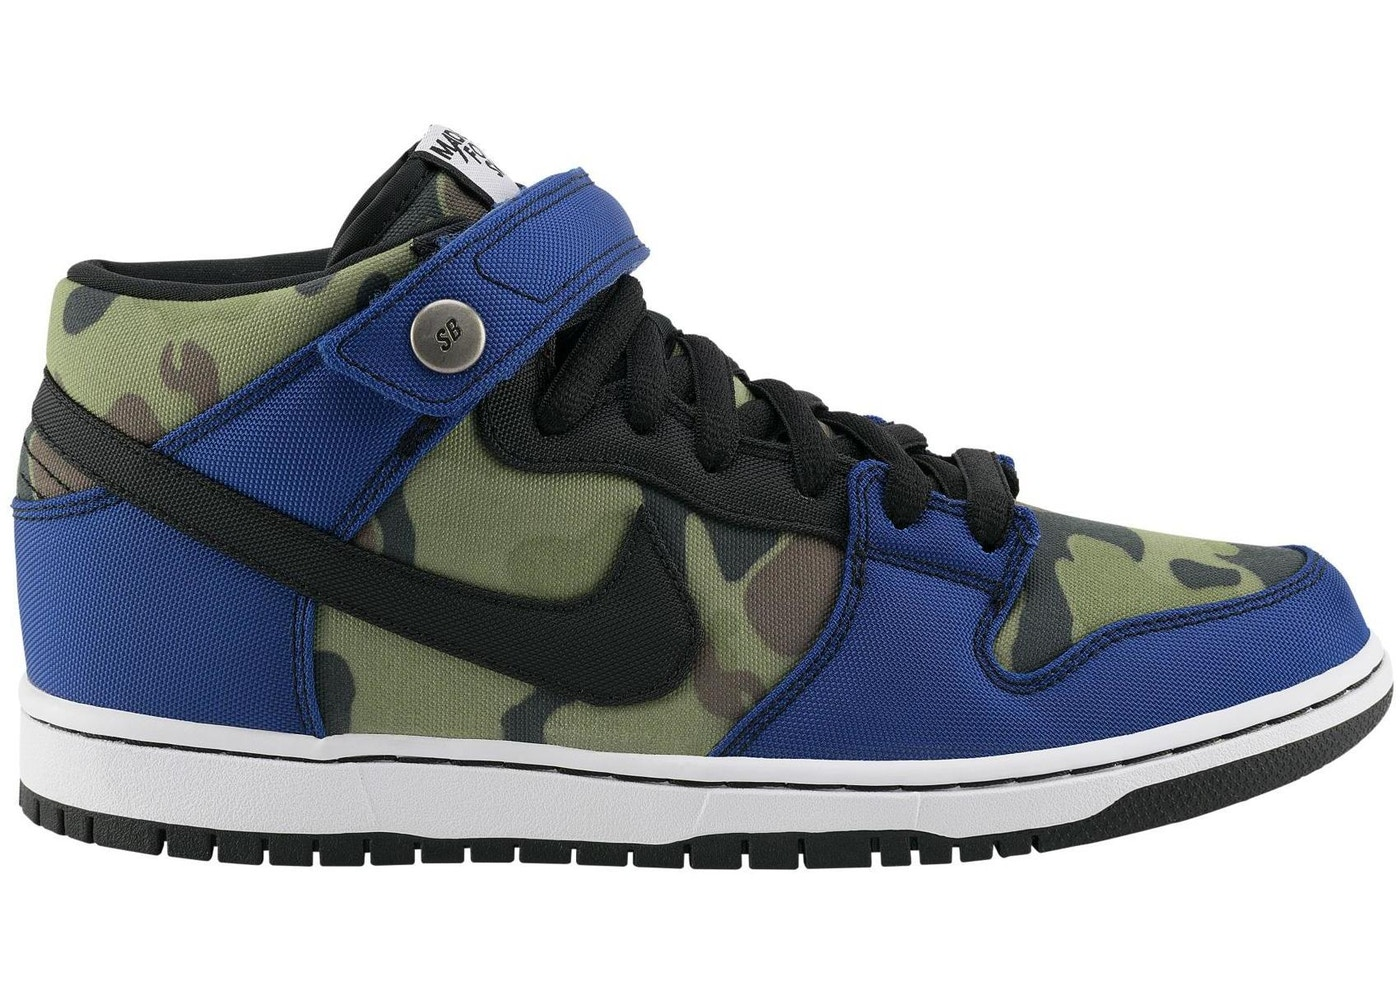 on sale 02ec3 dc873 Nike Dunk SB Mid Made for Skate